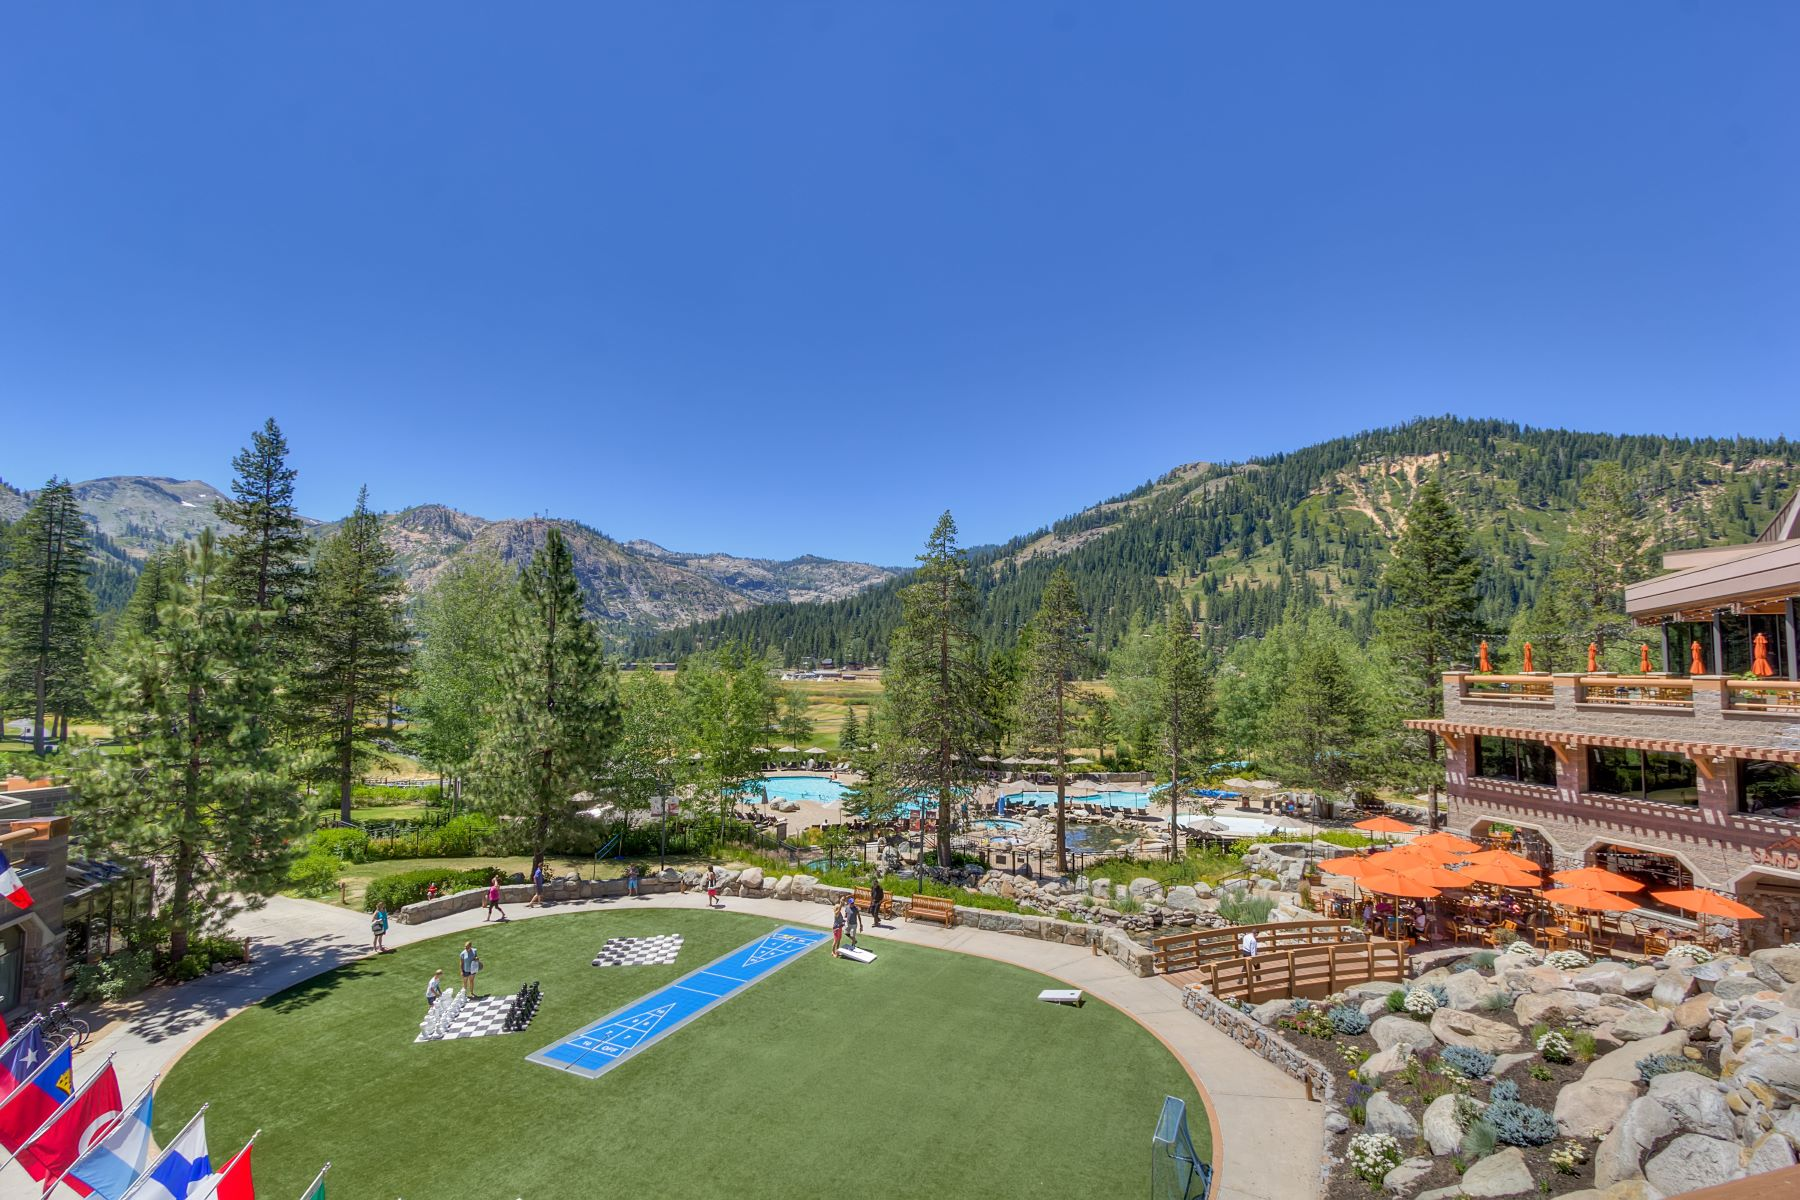 Townhouse for Active at 400 Squaw Creek Road # 609/611, Olympic Valley Road, Ca 96146 400 Squaw Creek Road 609/611 Olympic Valley, California 96146 United States